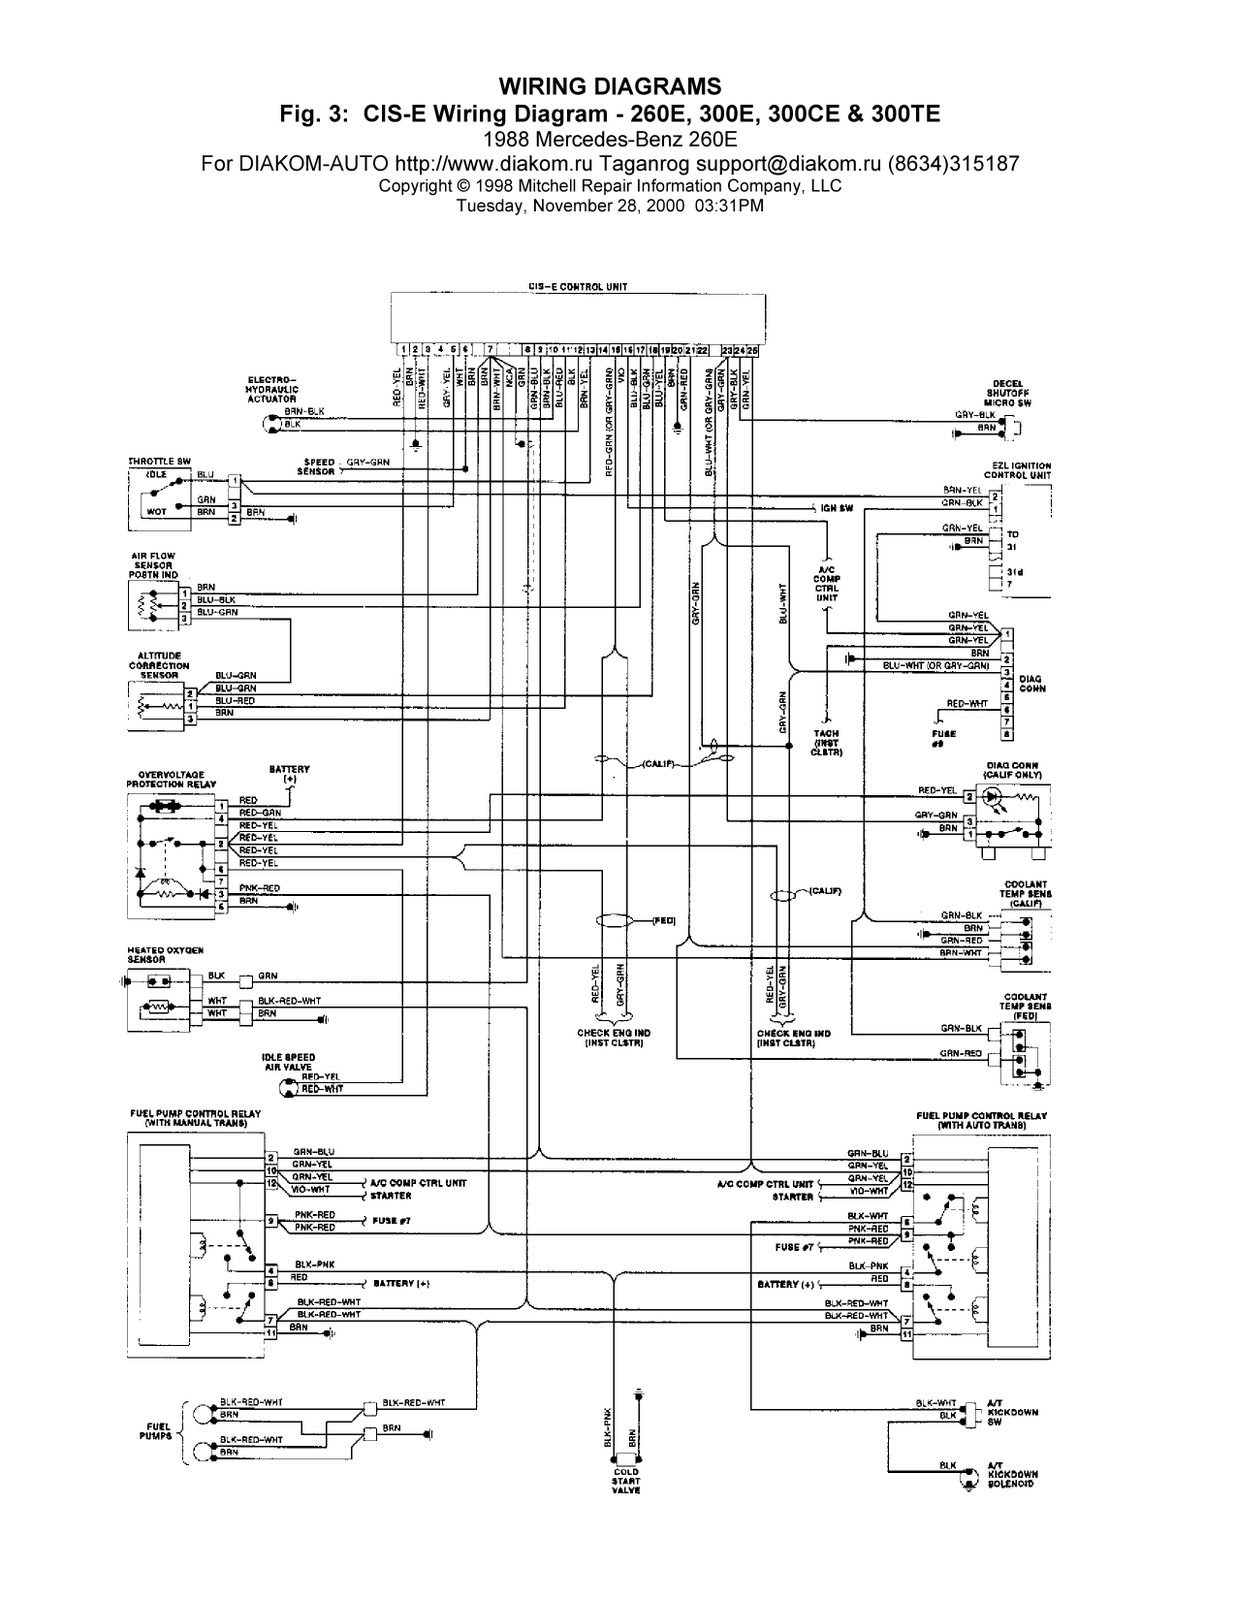 1988 MercedesBenz 260E CISE Wiring Diagrams | Schematic Wiring Diagrams Solutions